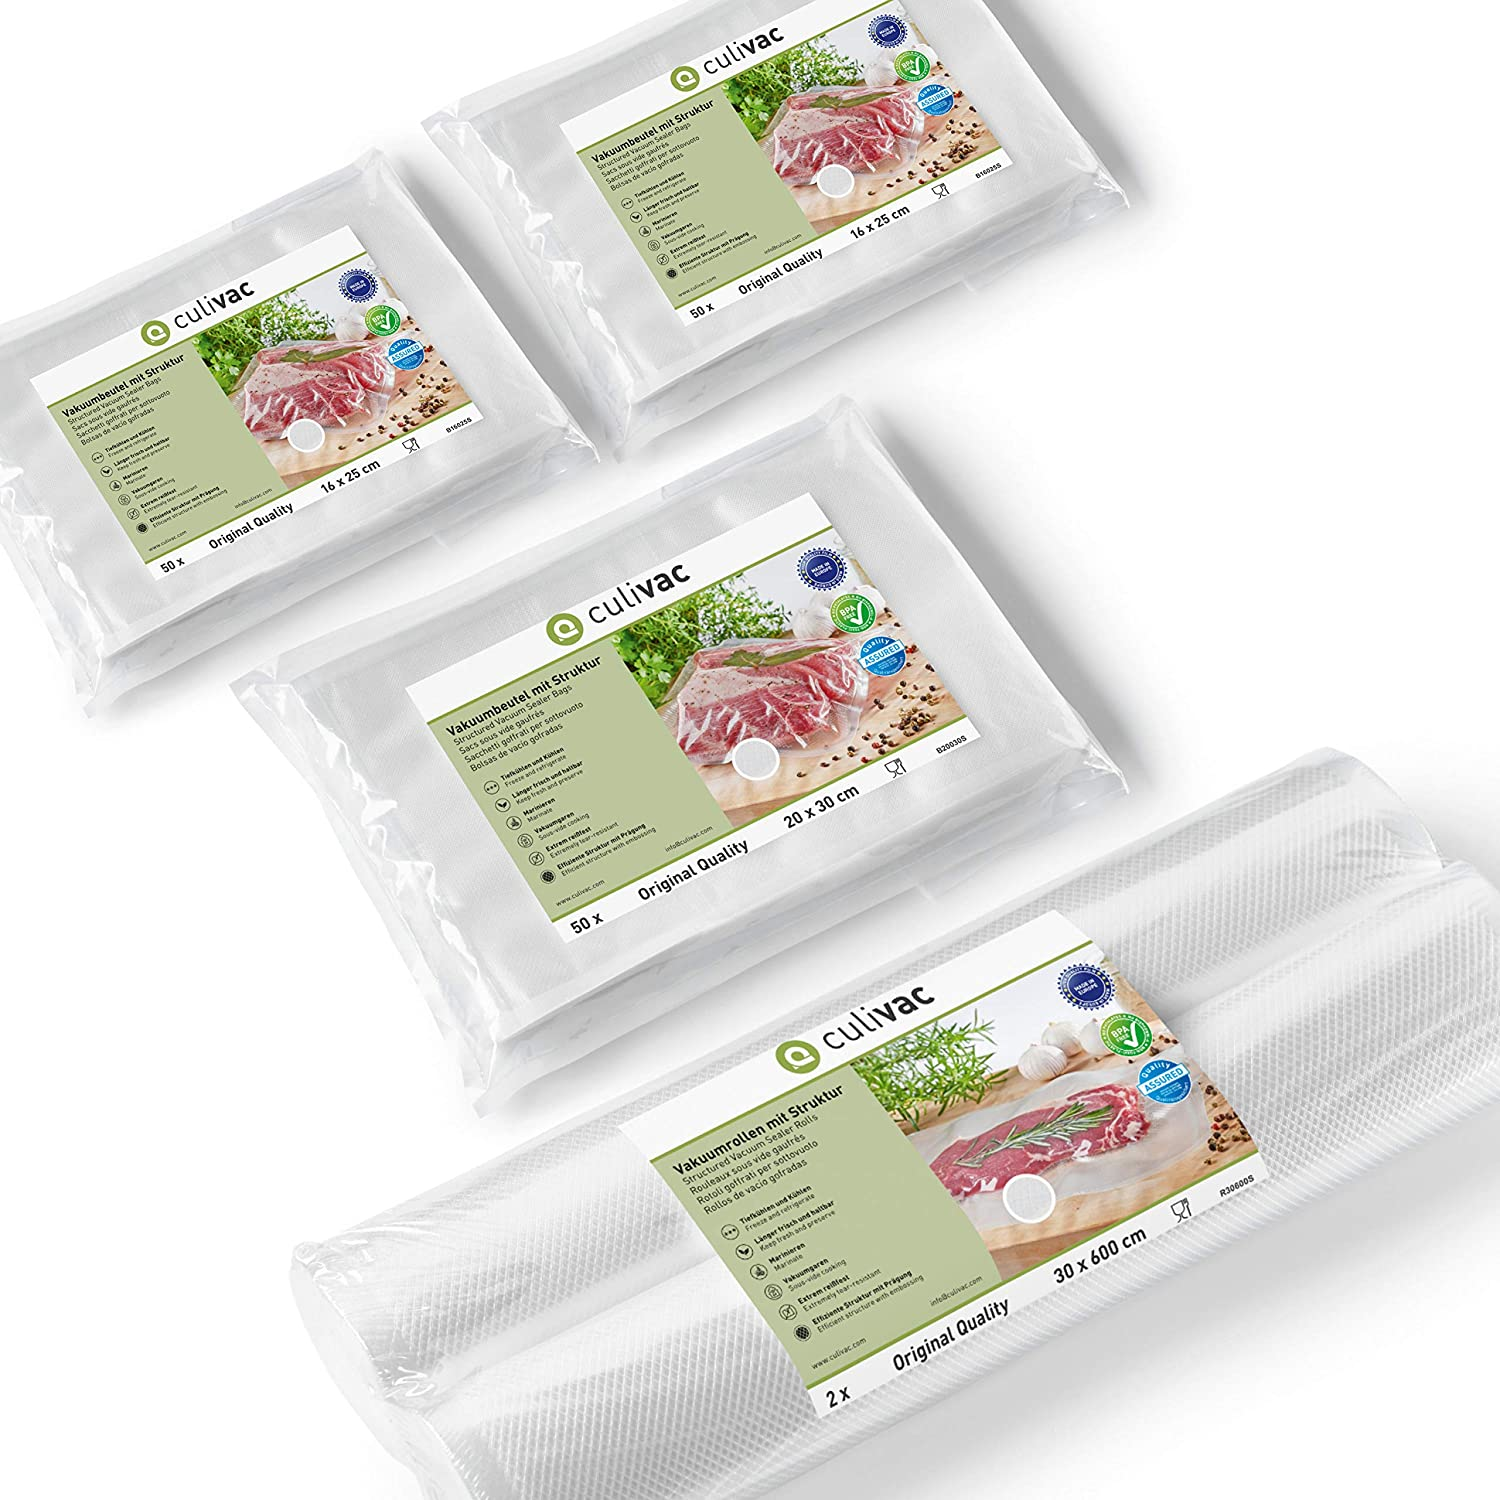 culivac Vacuum Food Sealer Bags 100 pcs 16x25cm // 50 pcs 20x30cm // Vacuum Food Sealer Rolls 2 pcs 30x600cm - Original Set 1